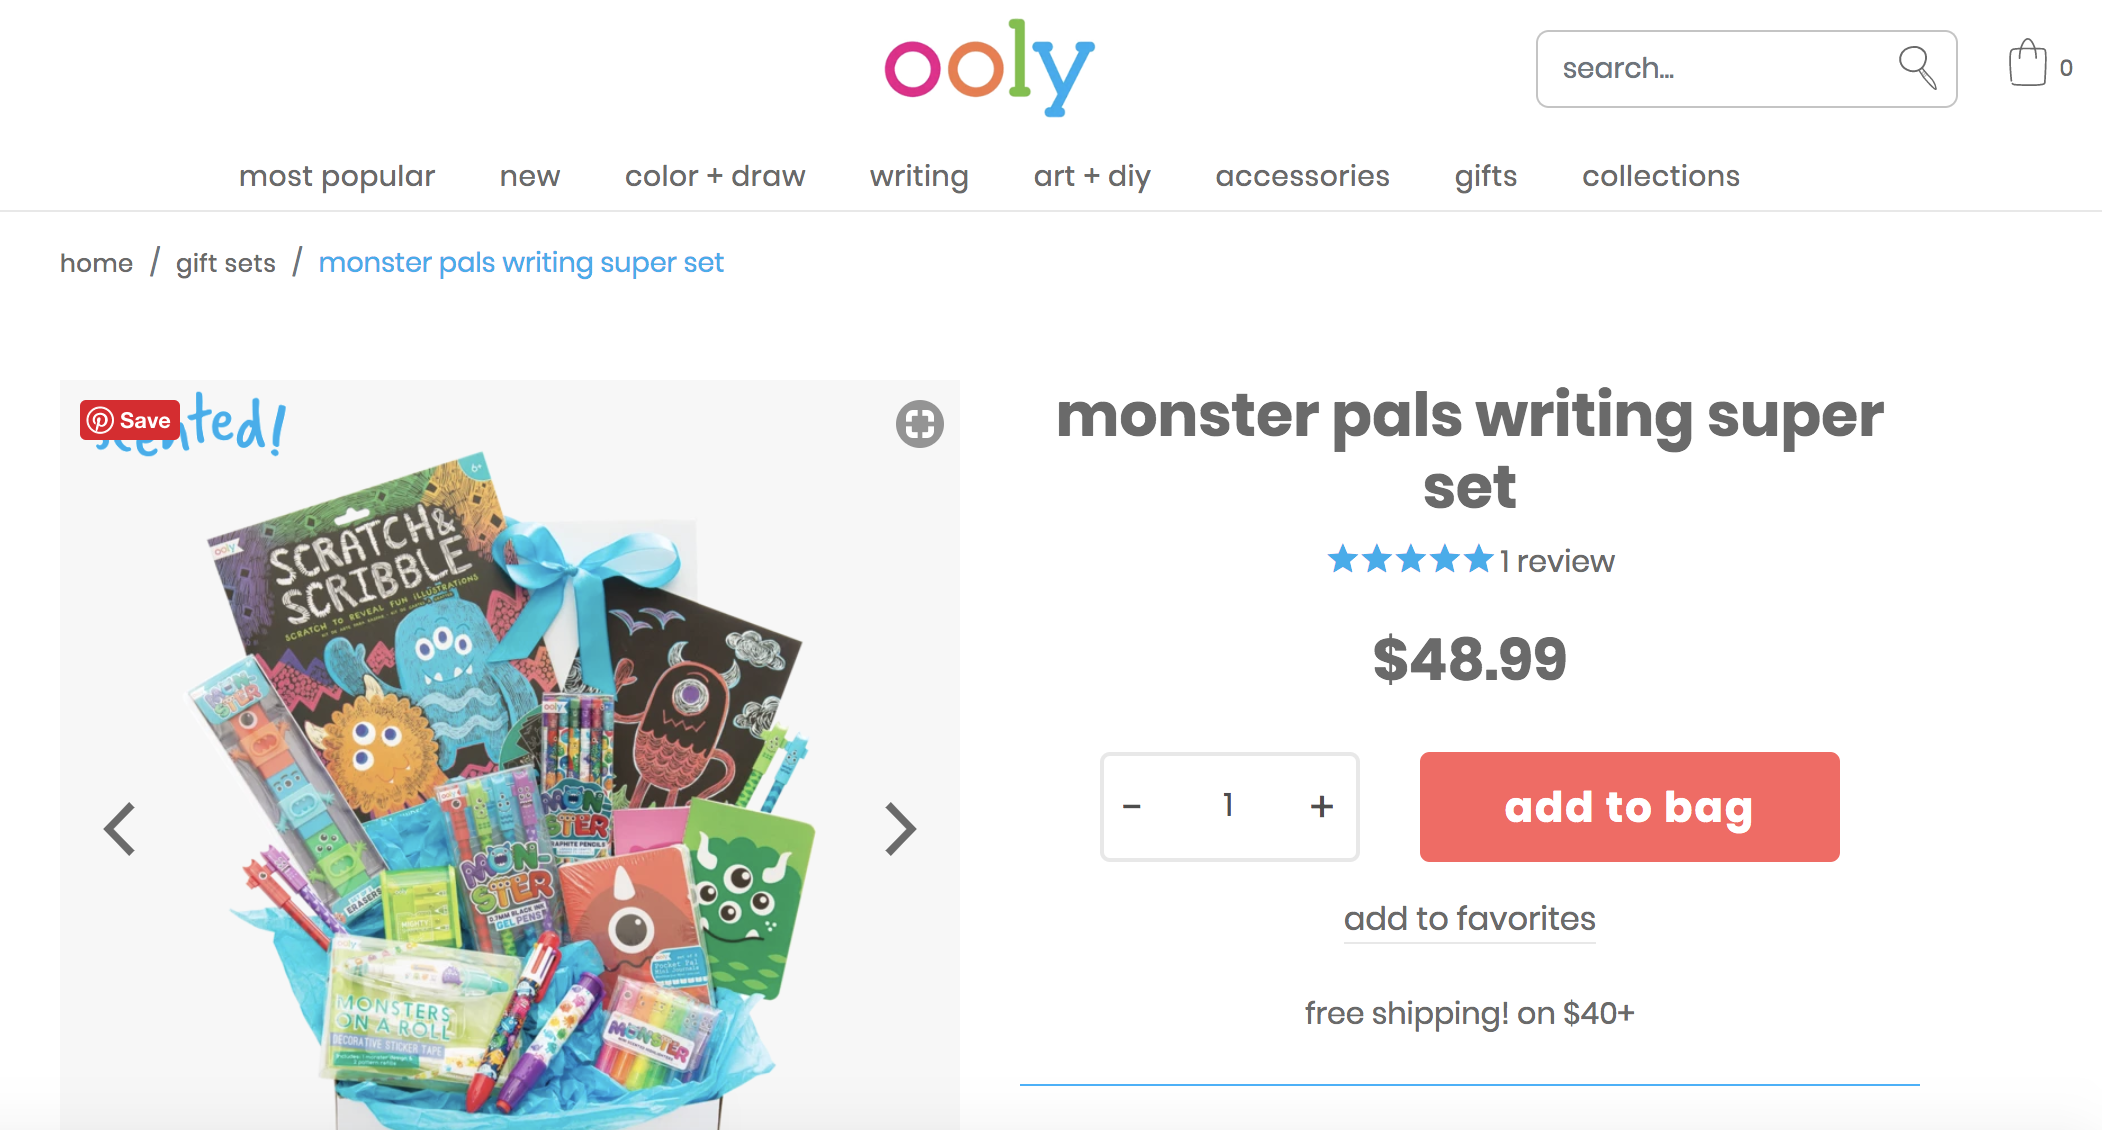 OOLY Gifts for Kids - Stationary, stickers and fun sets for creatives